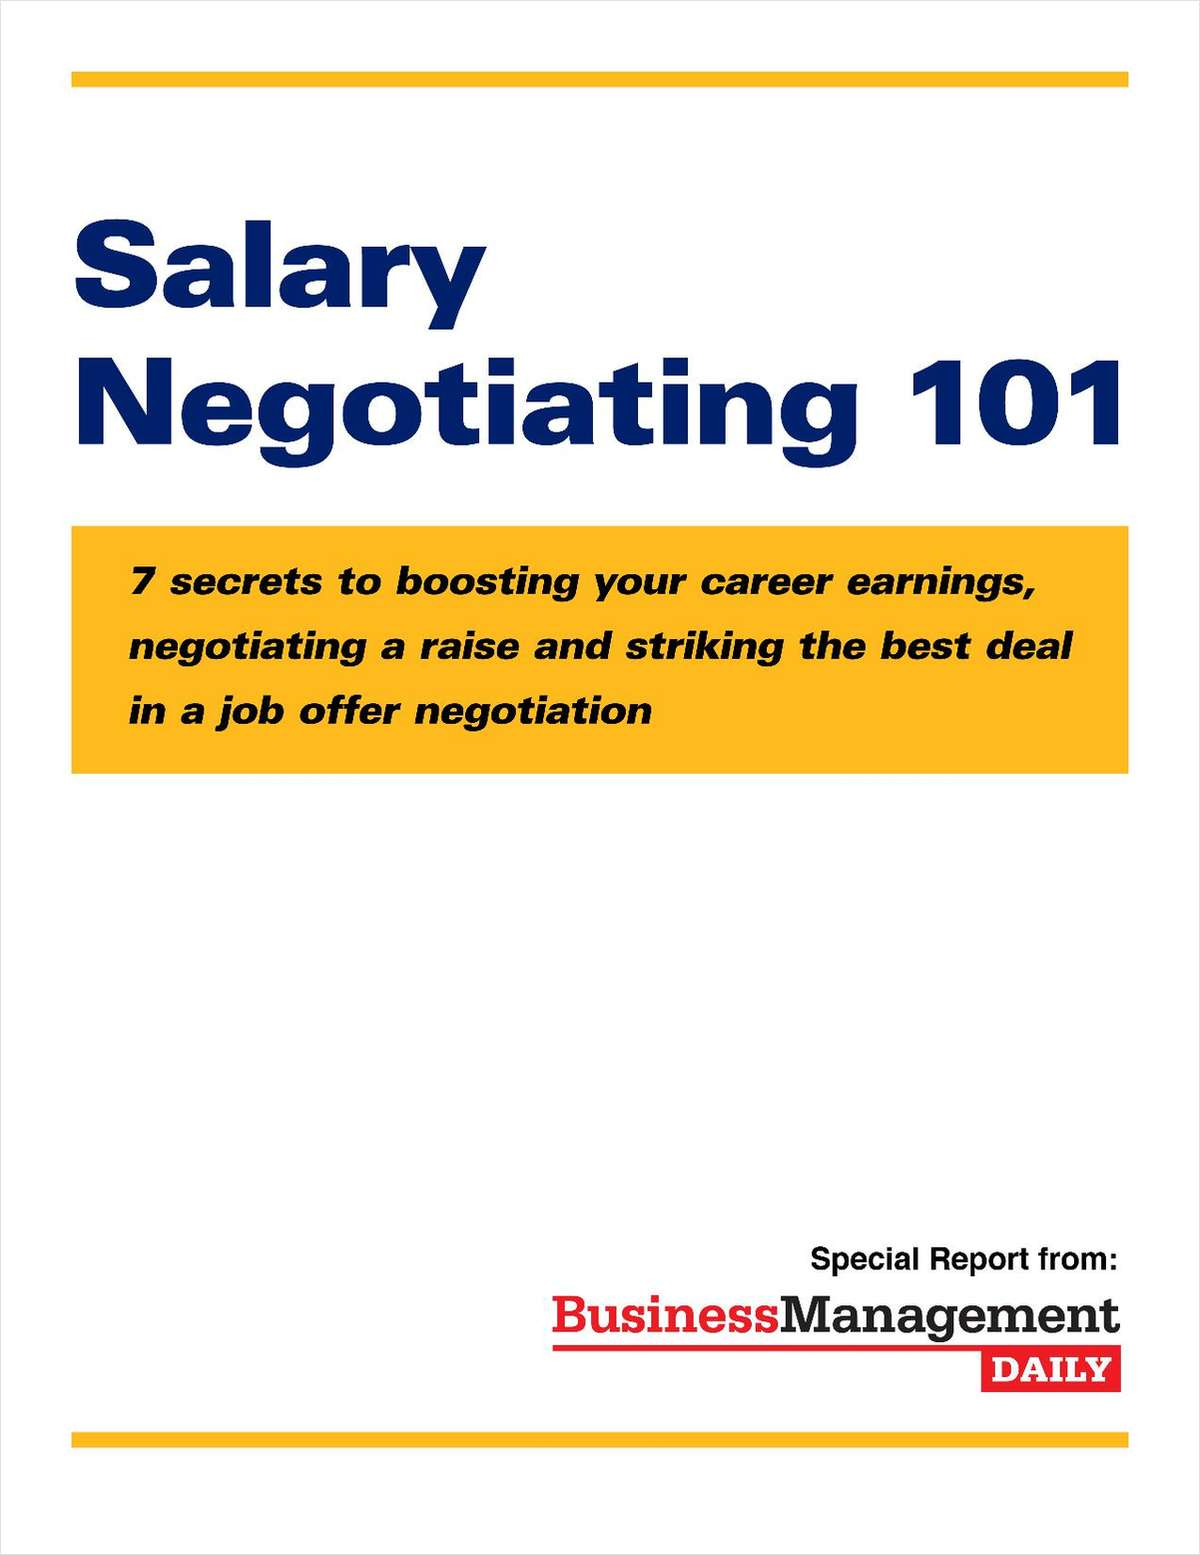 Salary Negotiating 101